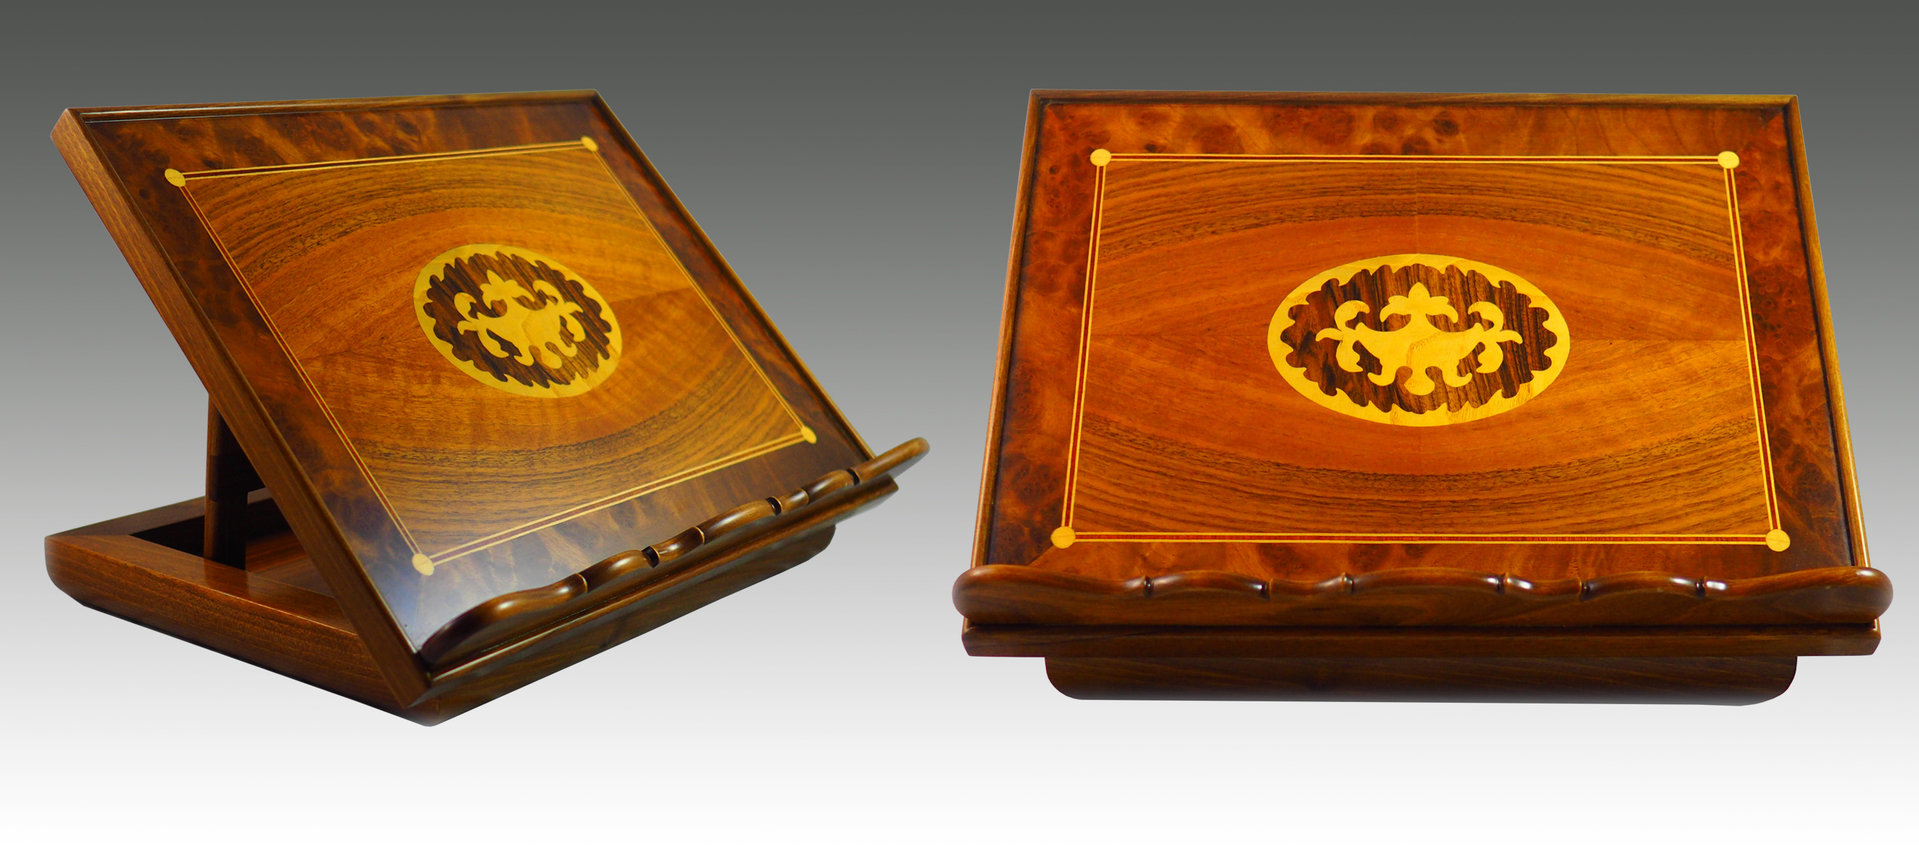 Walnut Lectern with marquetry